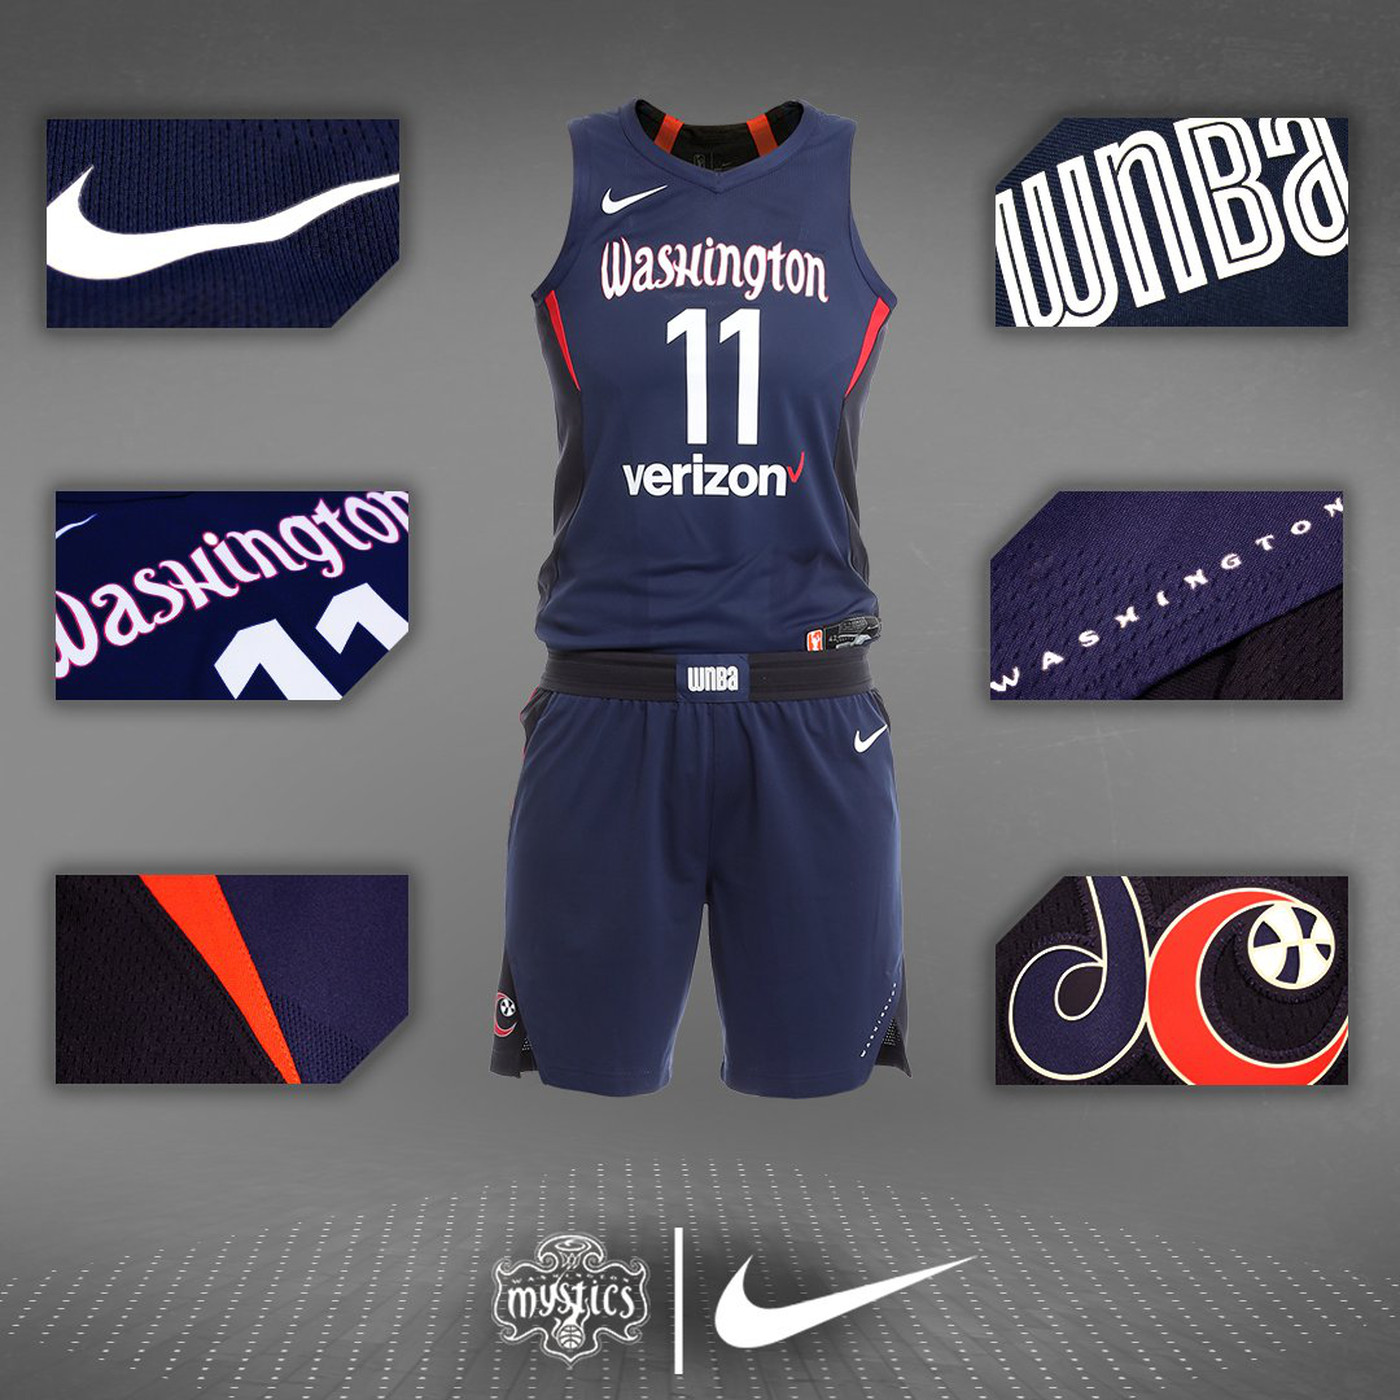 a8b76c90a The WNBA releases its Nike 'Statement' uniforms - Swish Appeal